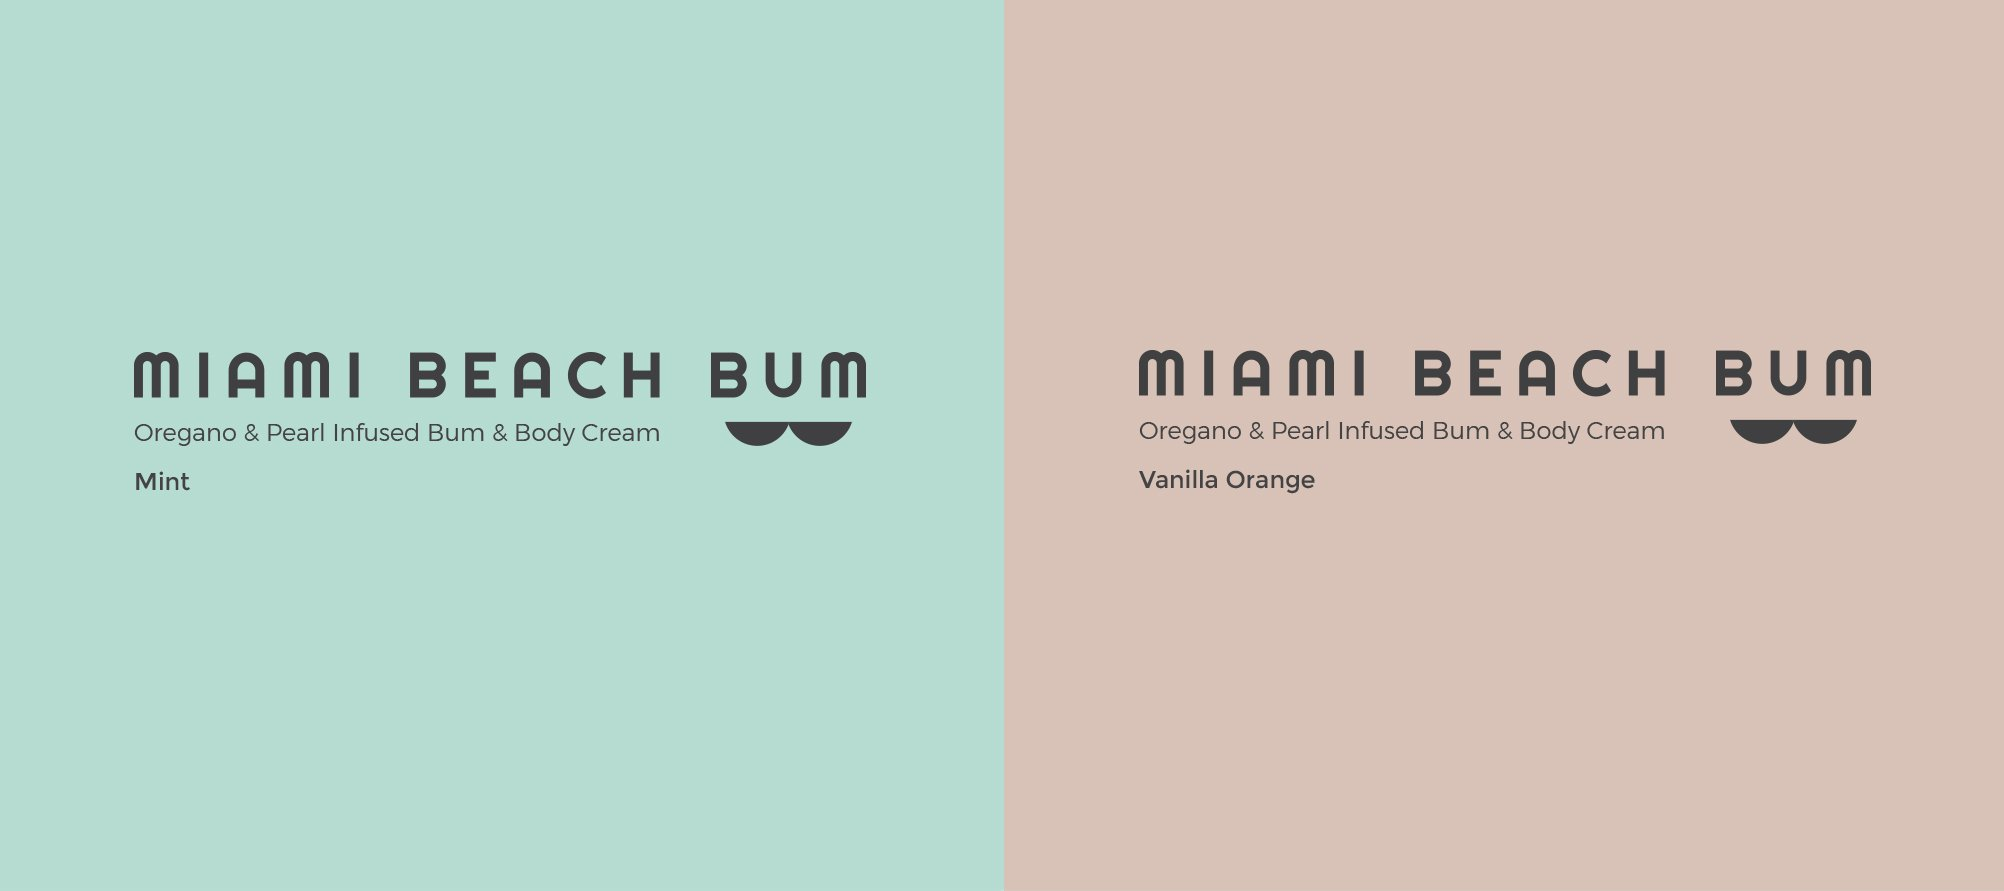 Miami Beach Bum Label Mint and Vanilla Orange